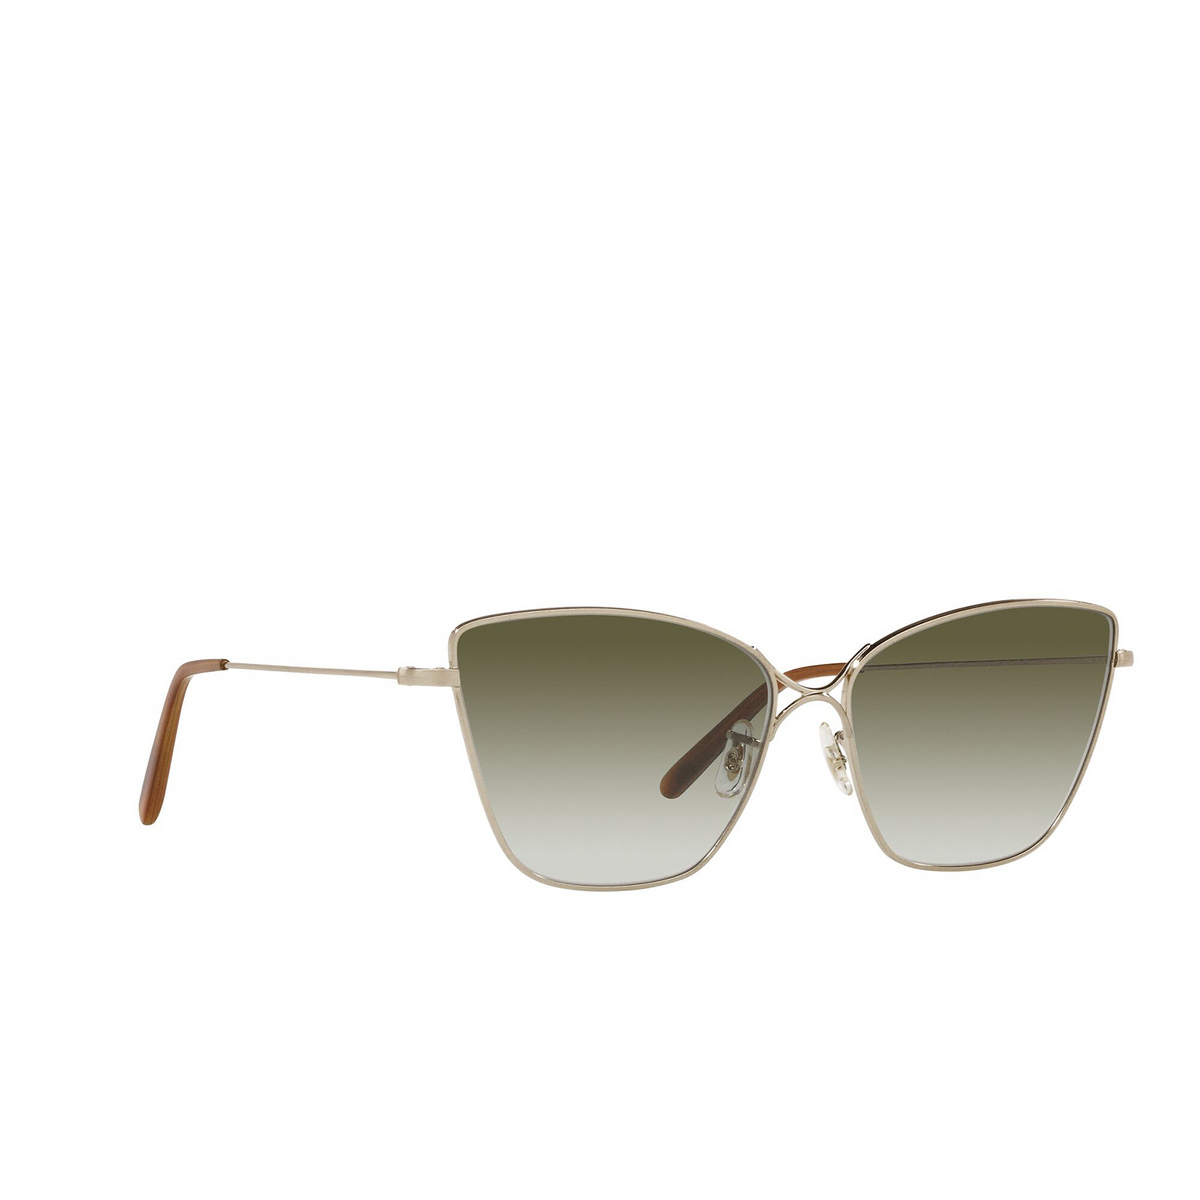 Oliver Peoples® Butterfly Sunglasses: Marlyse OV1288S color Brushed Gold 52718E - three-quarters view.